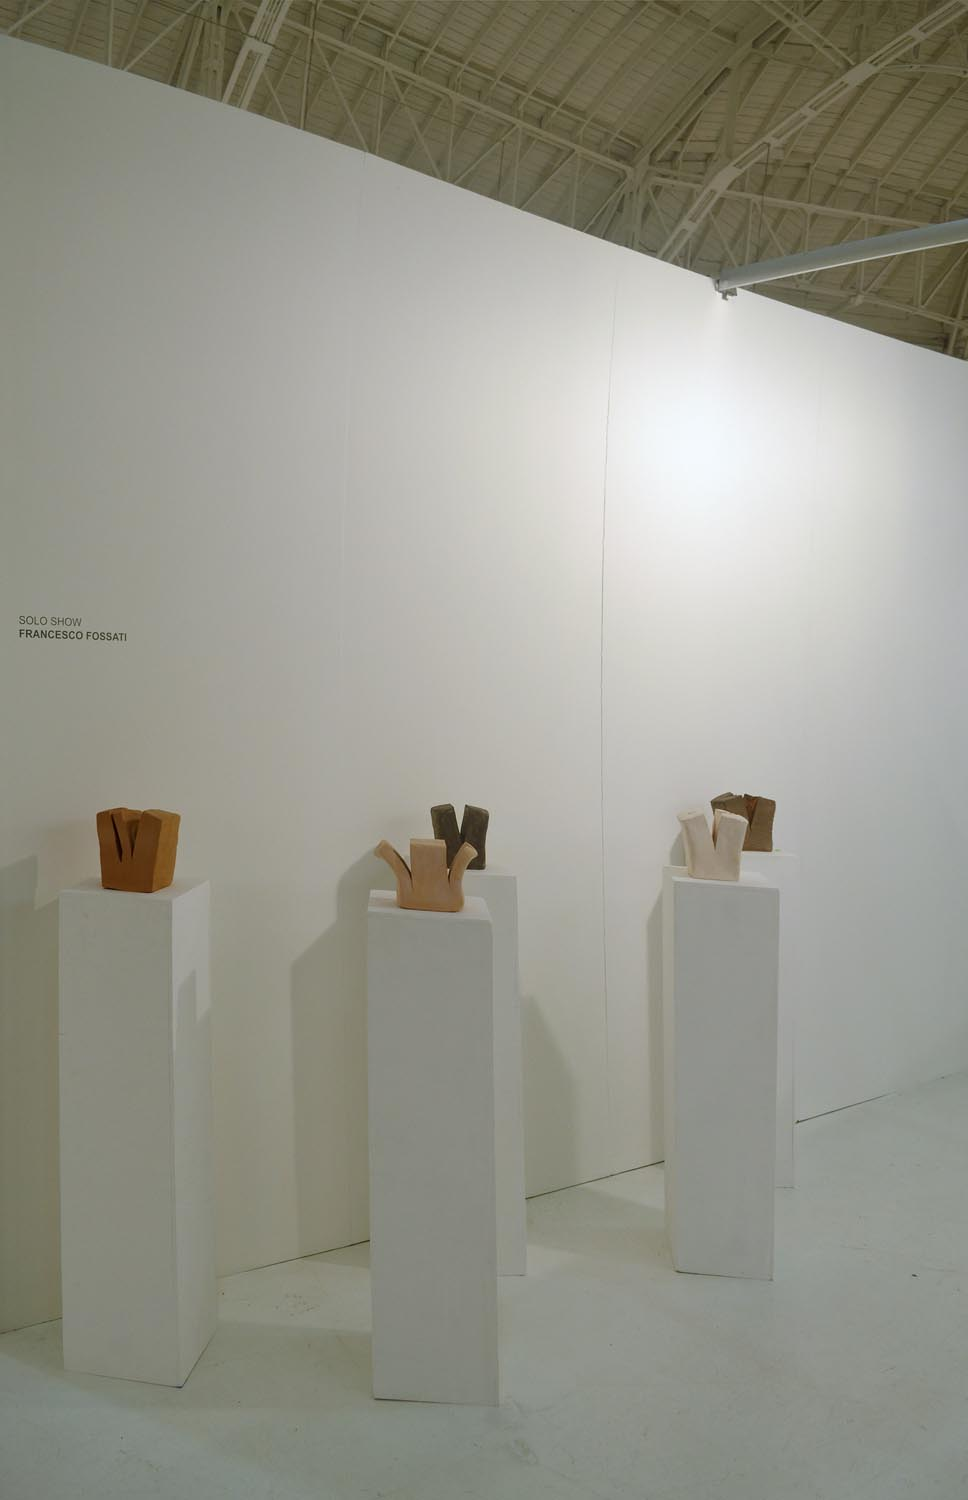 Francesco Fossati, Non specificity of medium, curated by Simone Frangi, installation view